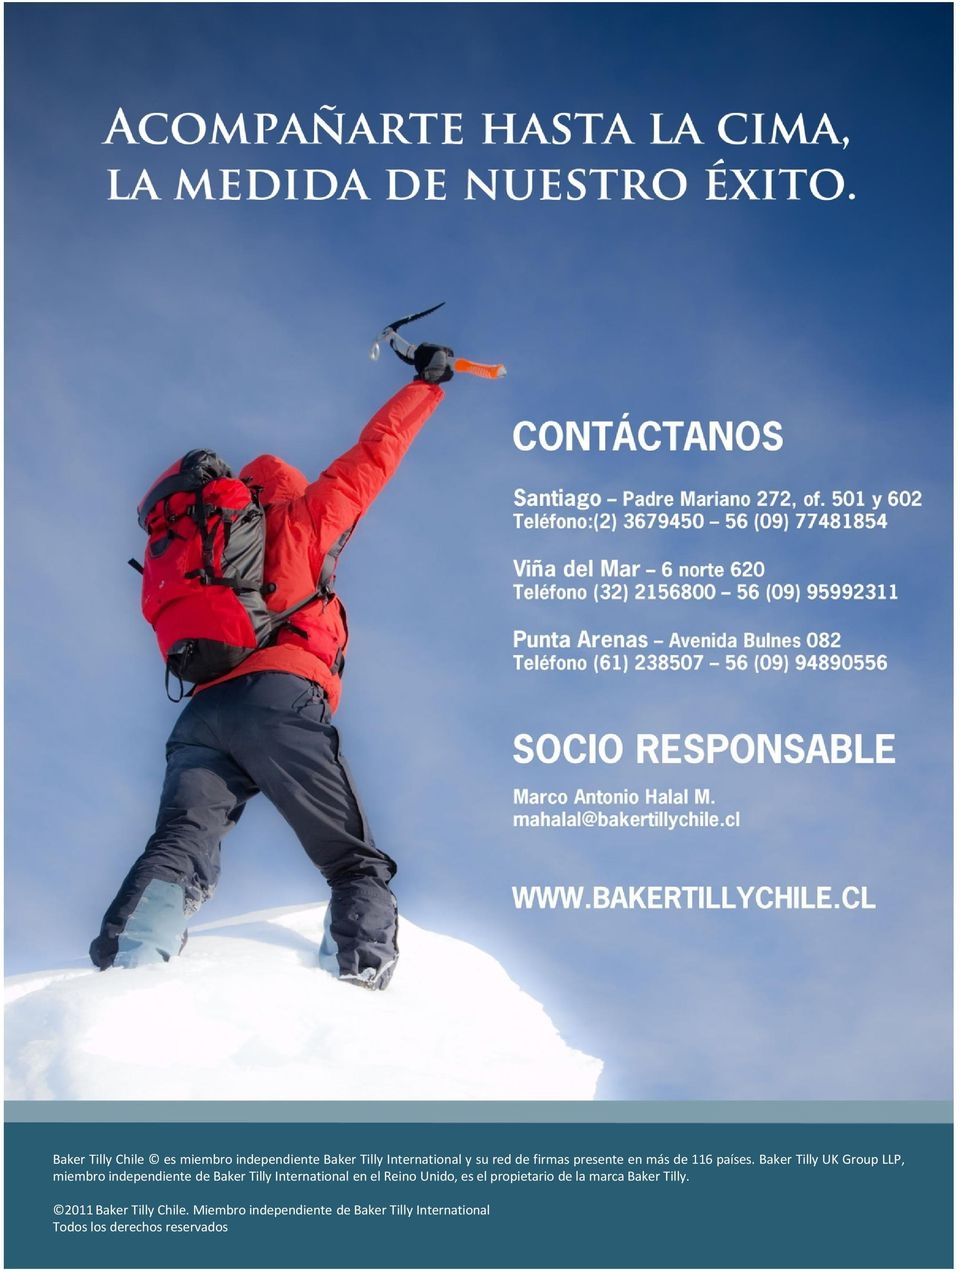 Baker Tilly UK Group LLP, miembro independiente de Baker Tilly International en el Reino